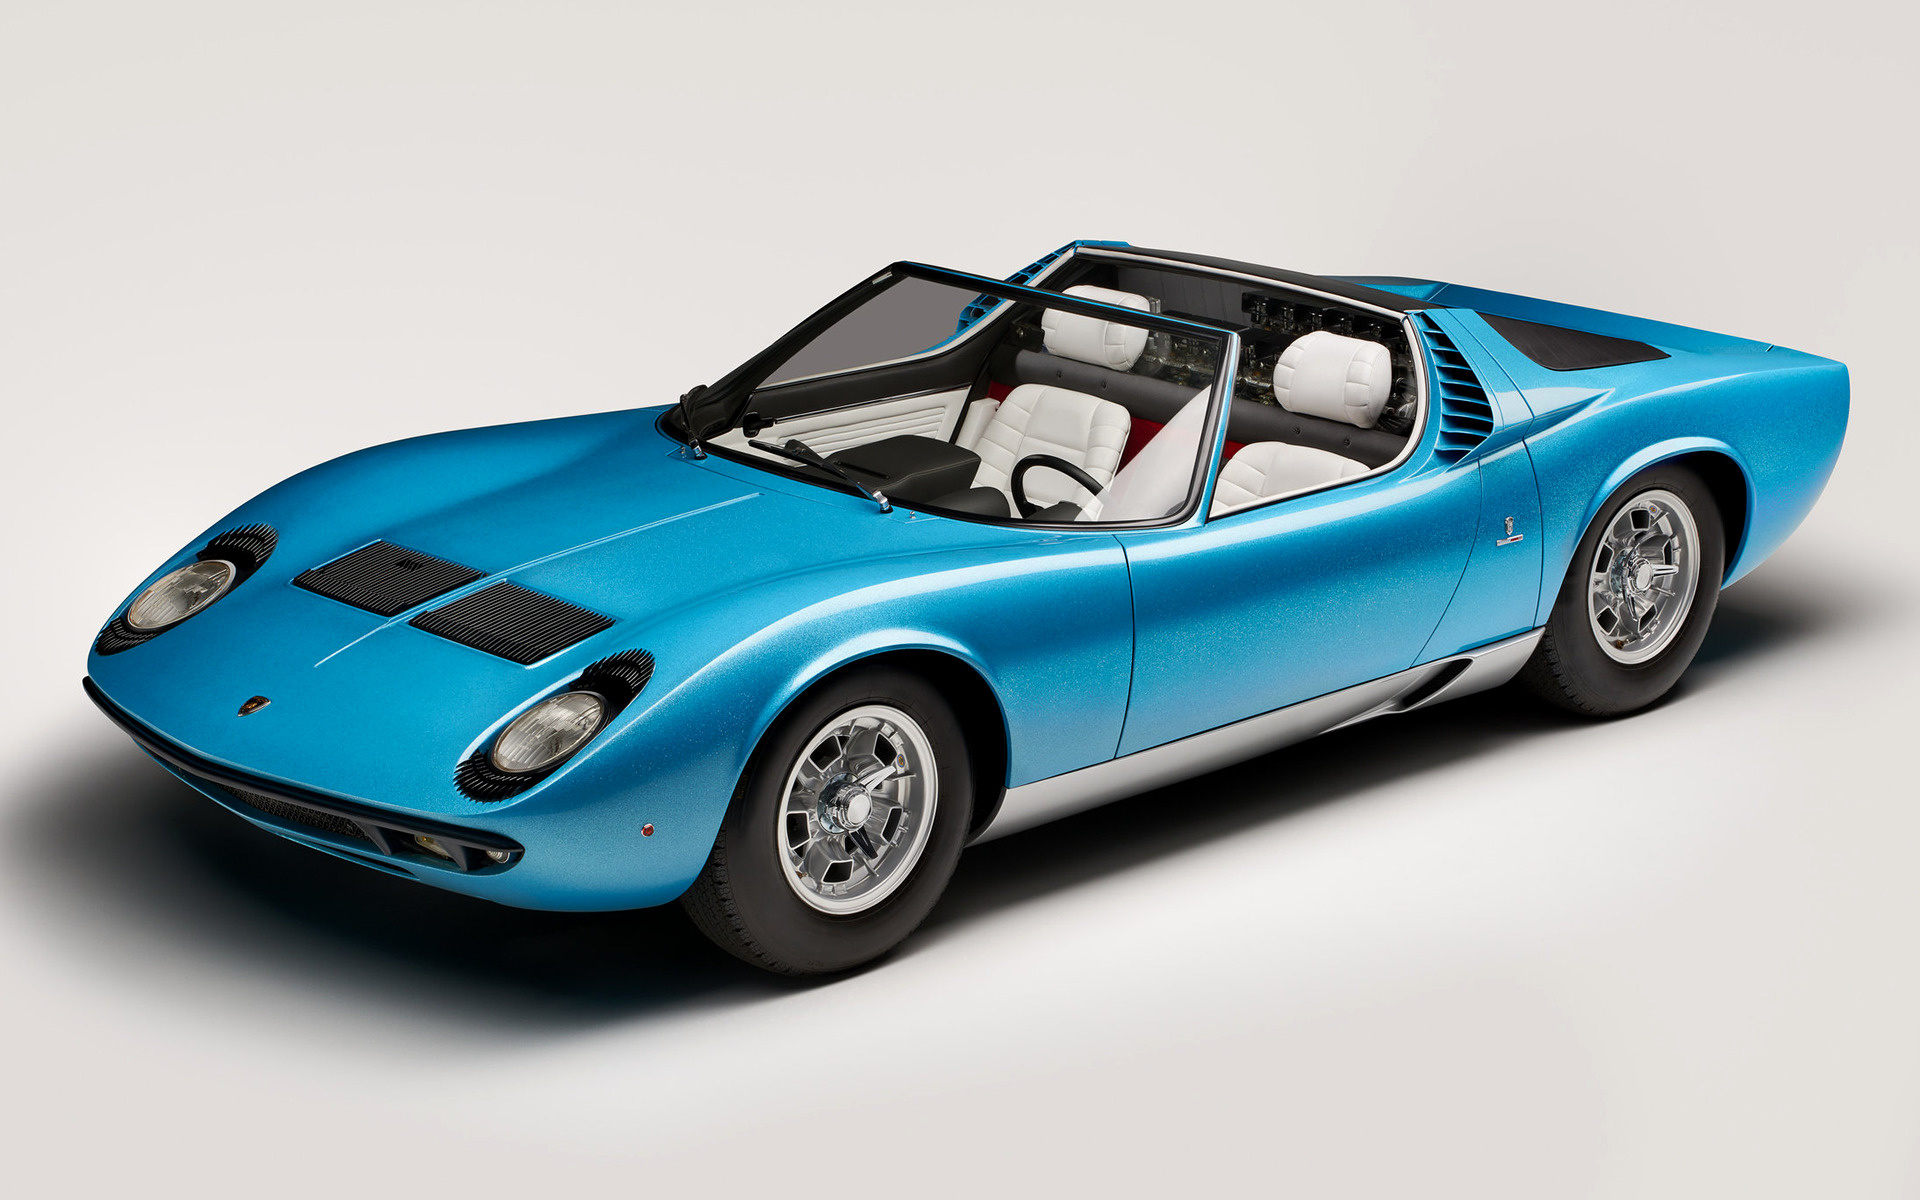 https://www.carpixel.net/w/9dd1c9076fe59c08fe2d53d3d2af41f2/lamborghini-miura-roadster-car-wallpaper-72245.jpg